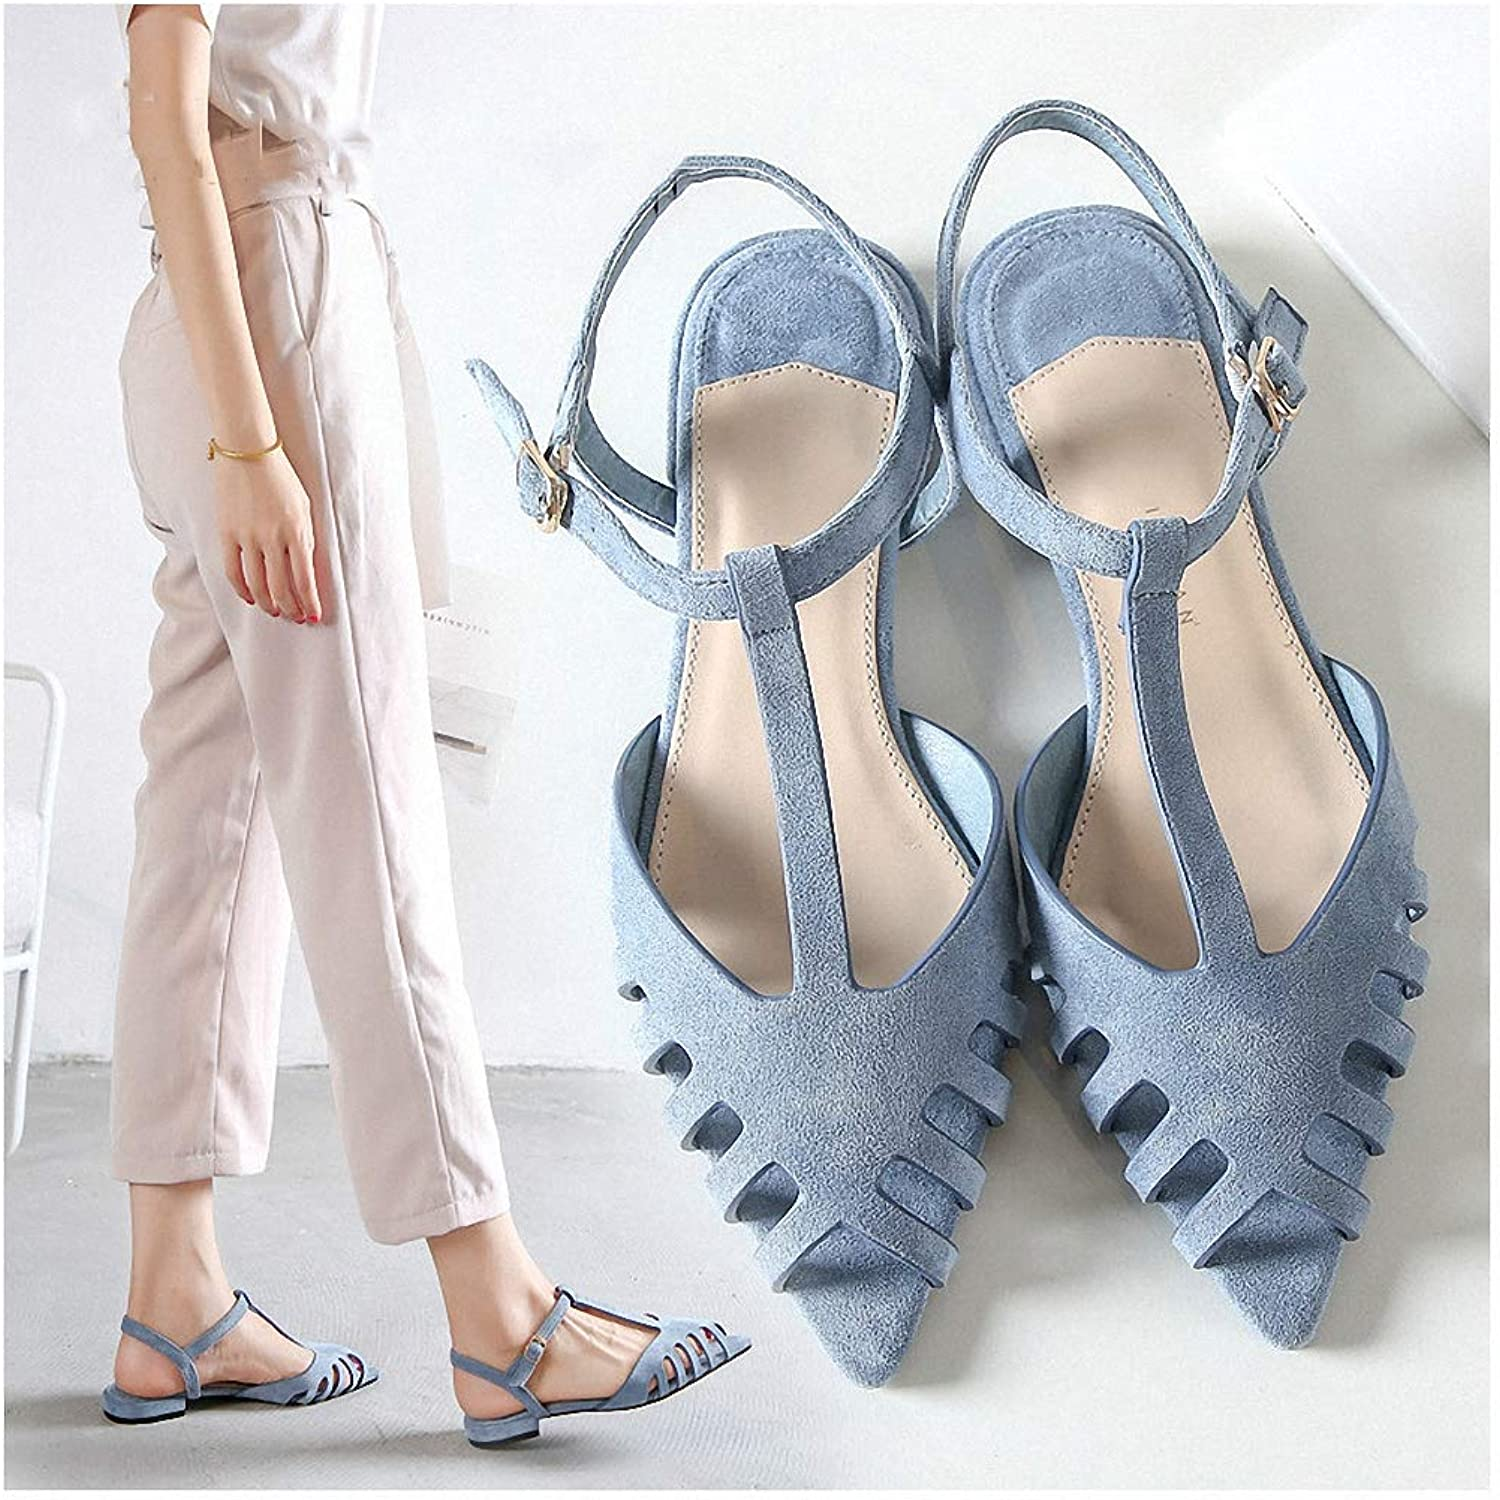 Tebapi Womens Low-Heeled Sandal shoes New Spring and Summer Spike Flat-Heeled shoes Women's Slippers Hollow-Out Women's shoes